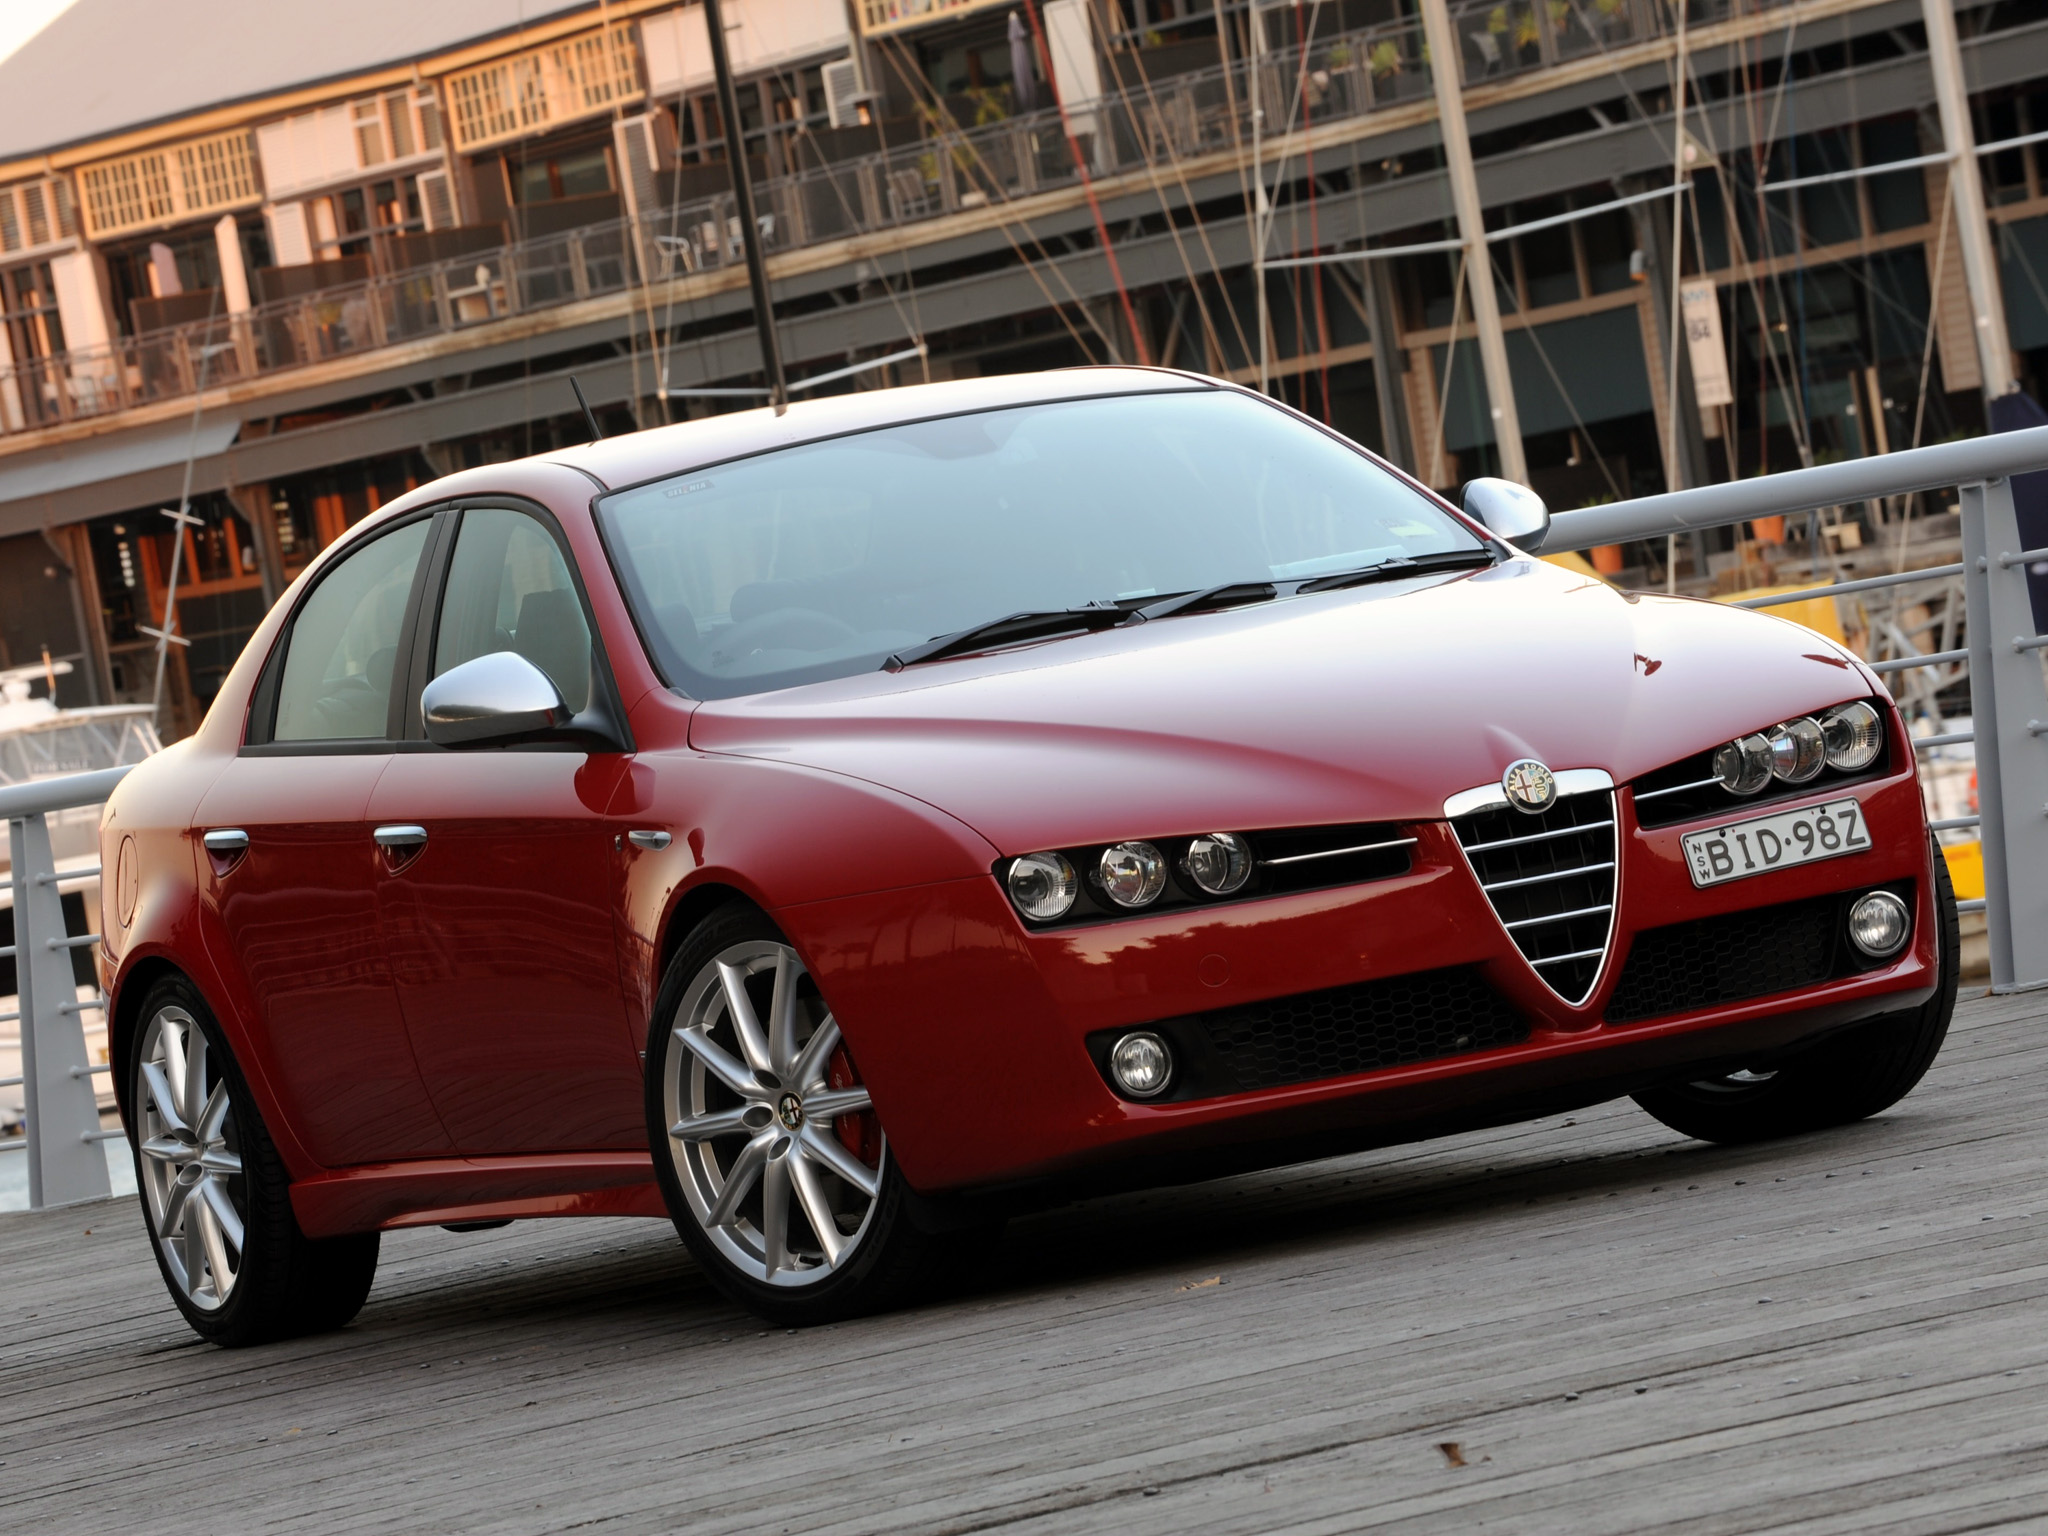 2008 Alfa Romeo 159 Sedan 4-door